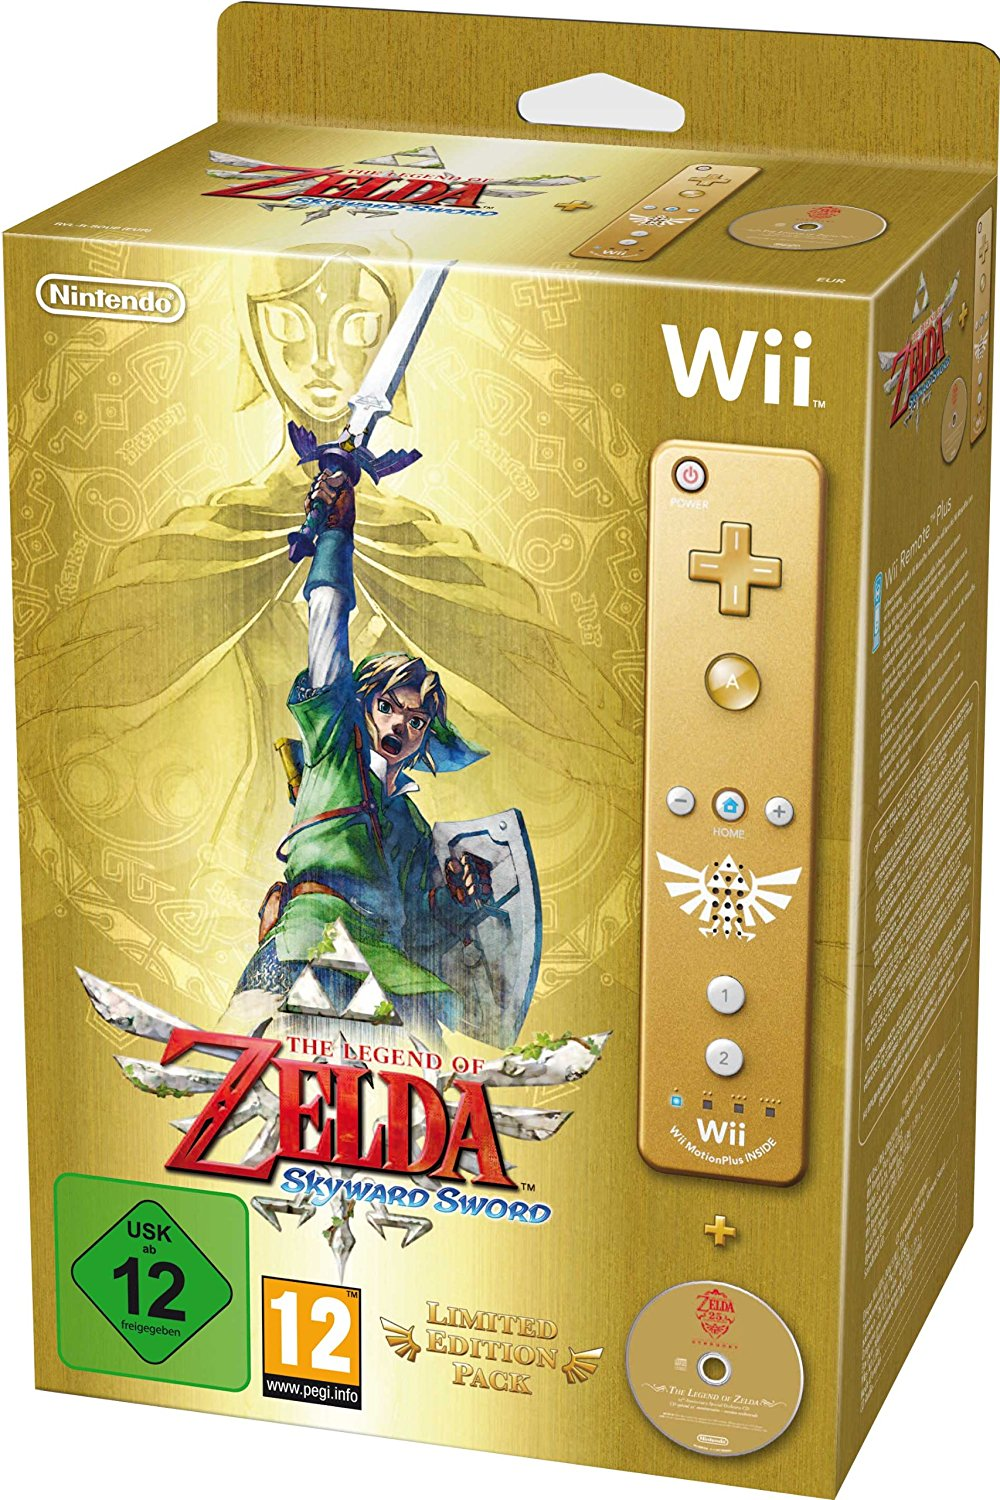 Wii Zelda Skyward Sword Limited edition telecomando oro